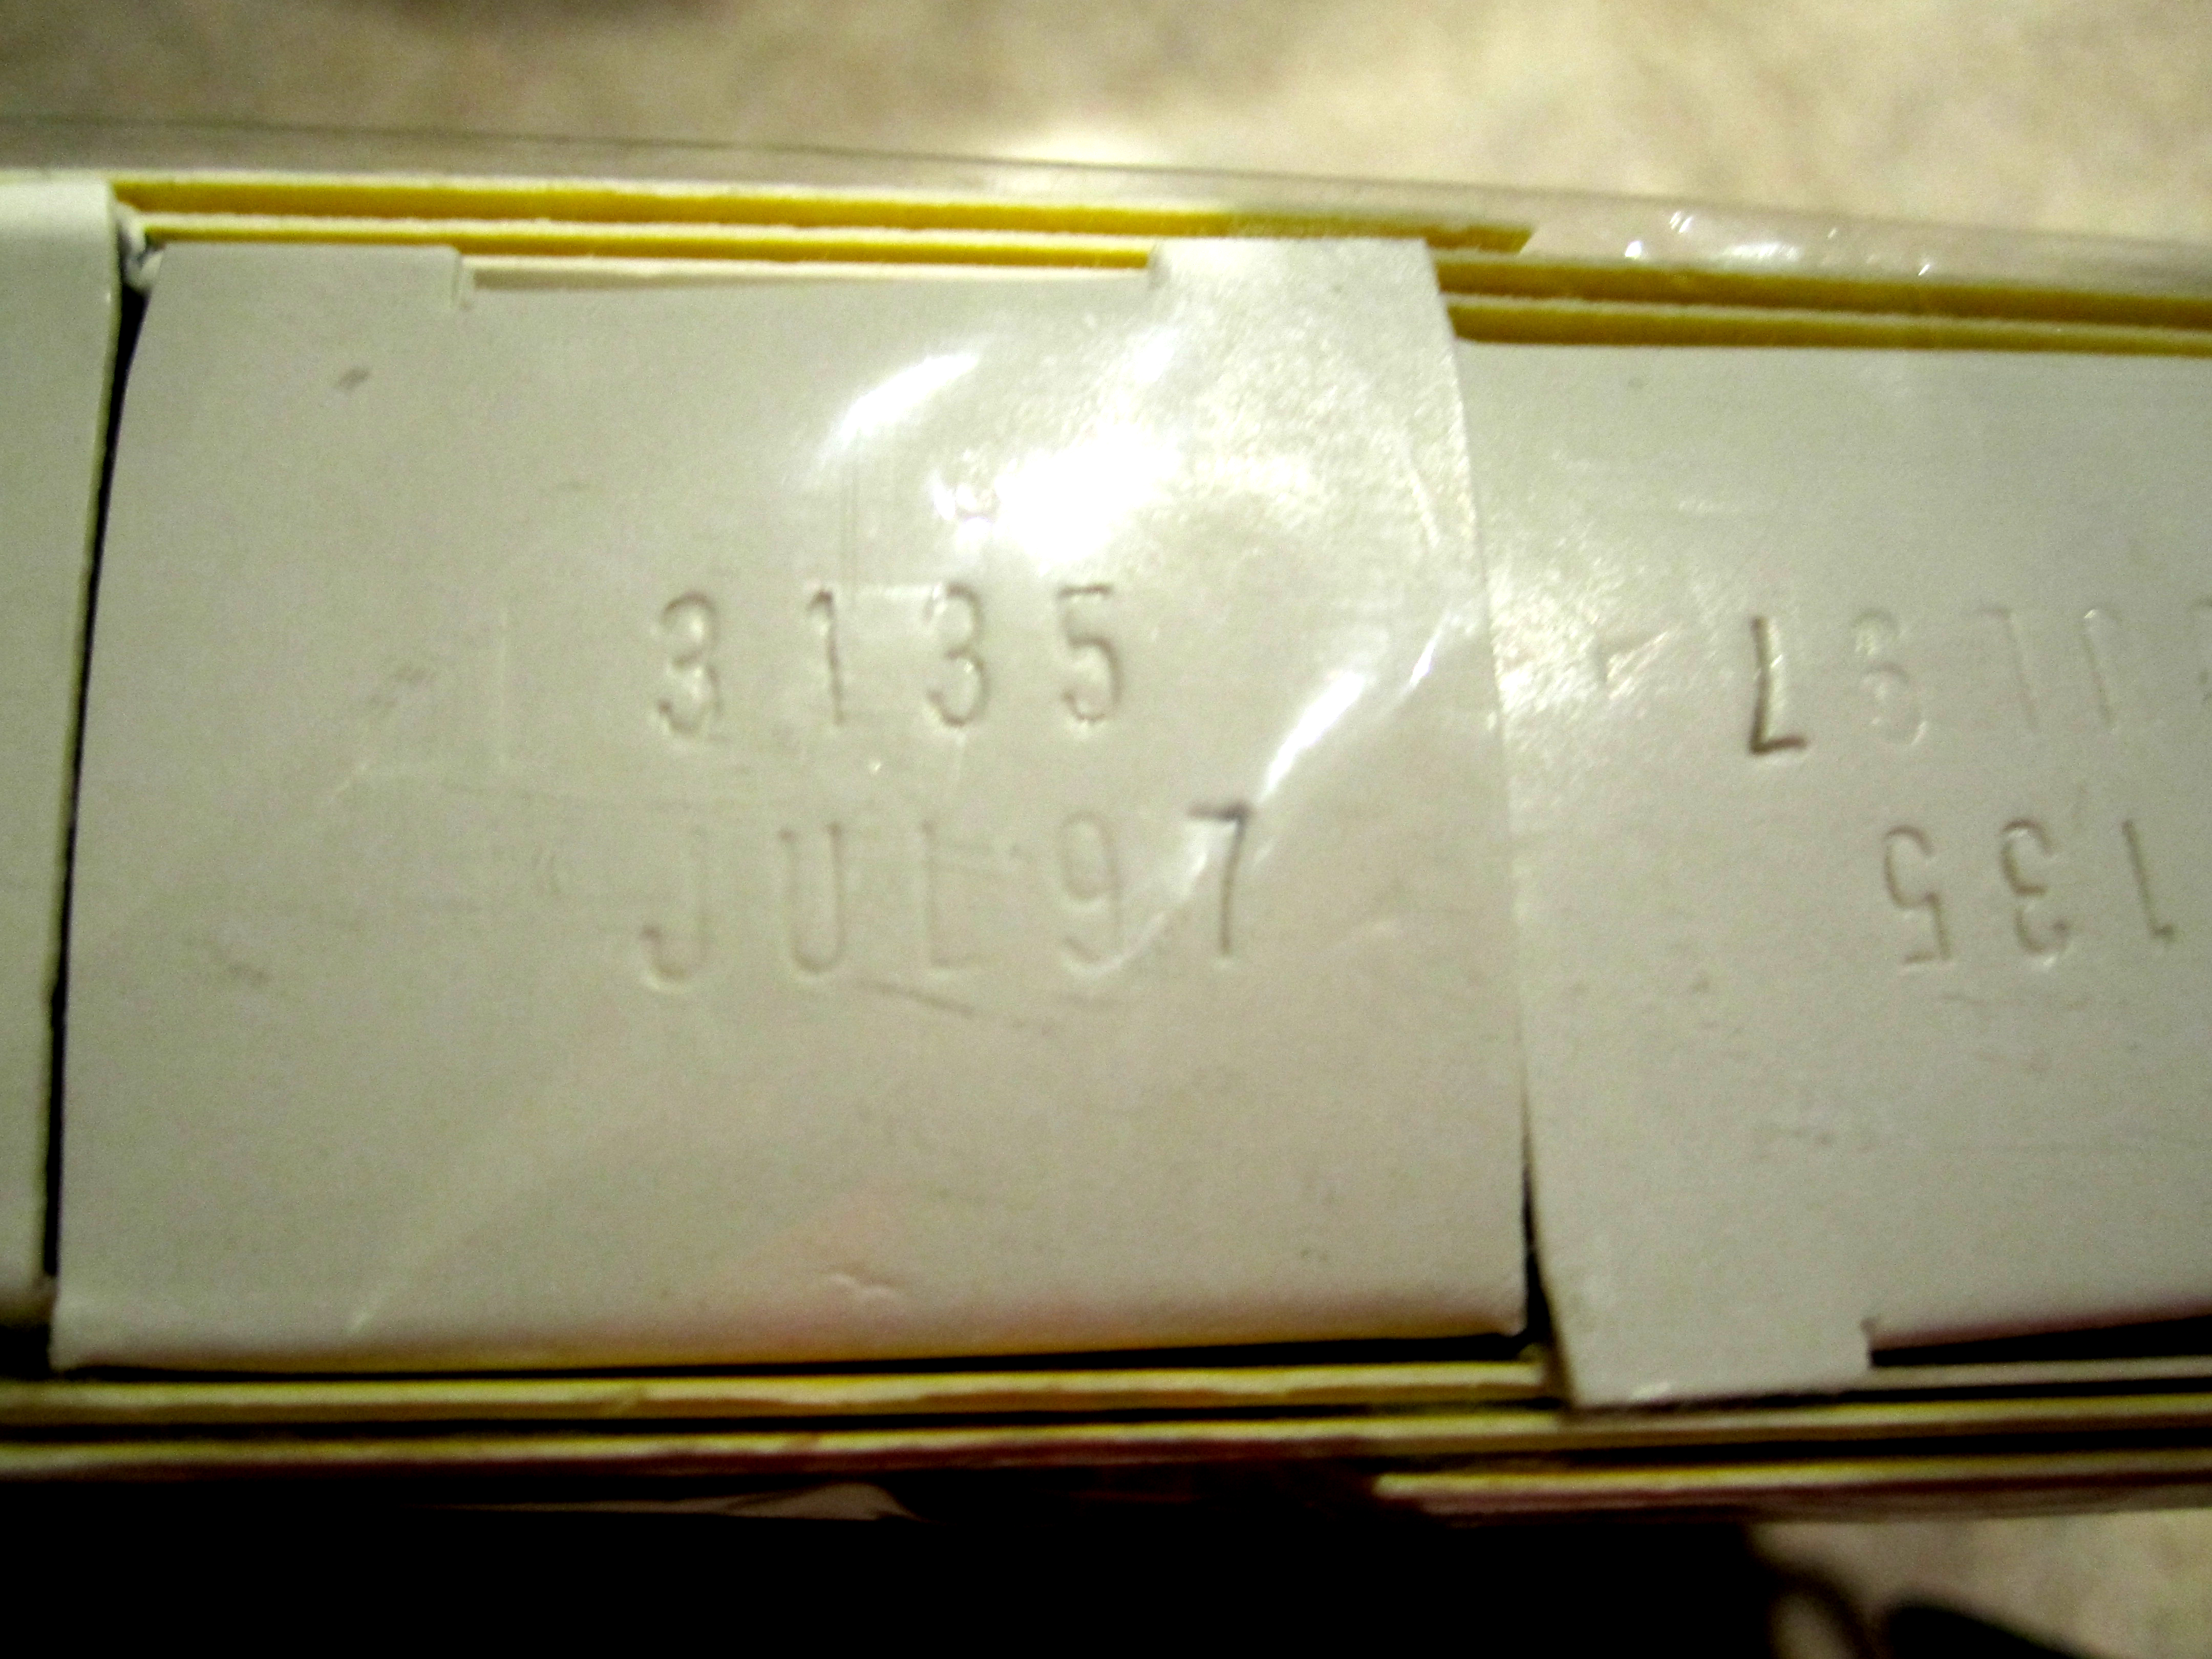 I 20 expiration date in Perth